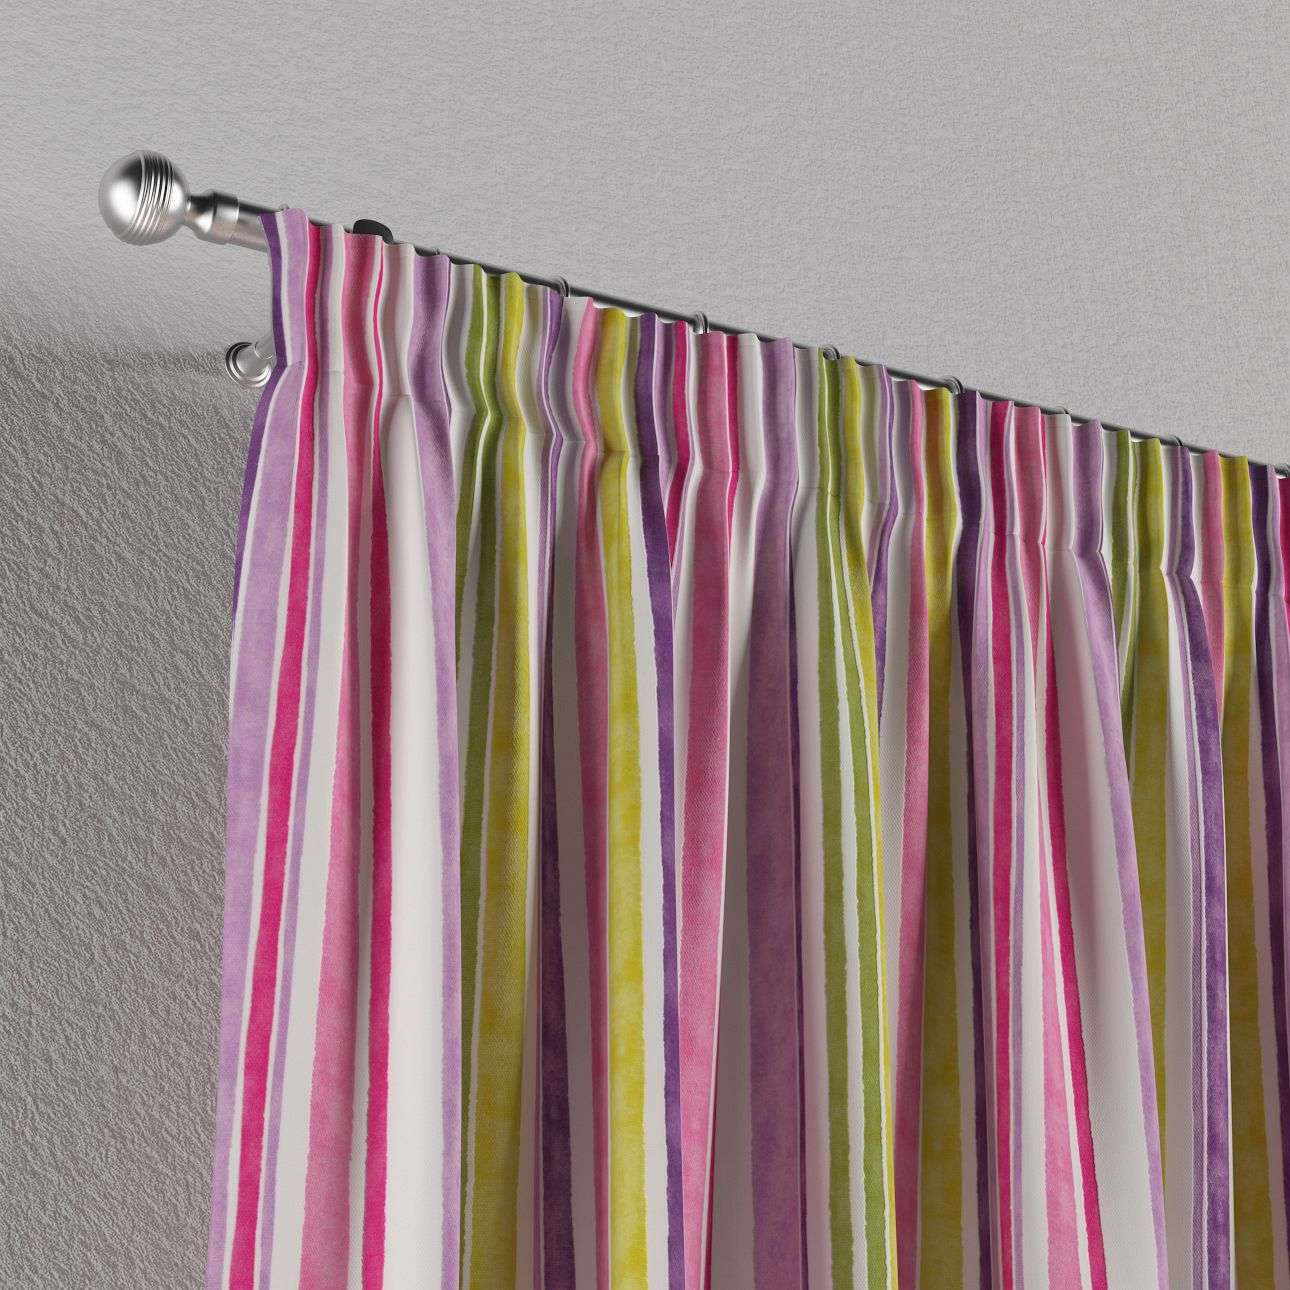 Pencil pleat curtains in collection Monet, fabric: 140-01